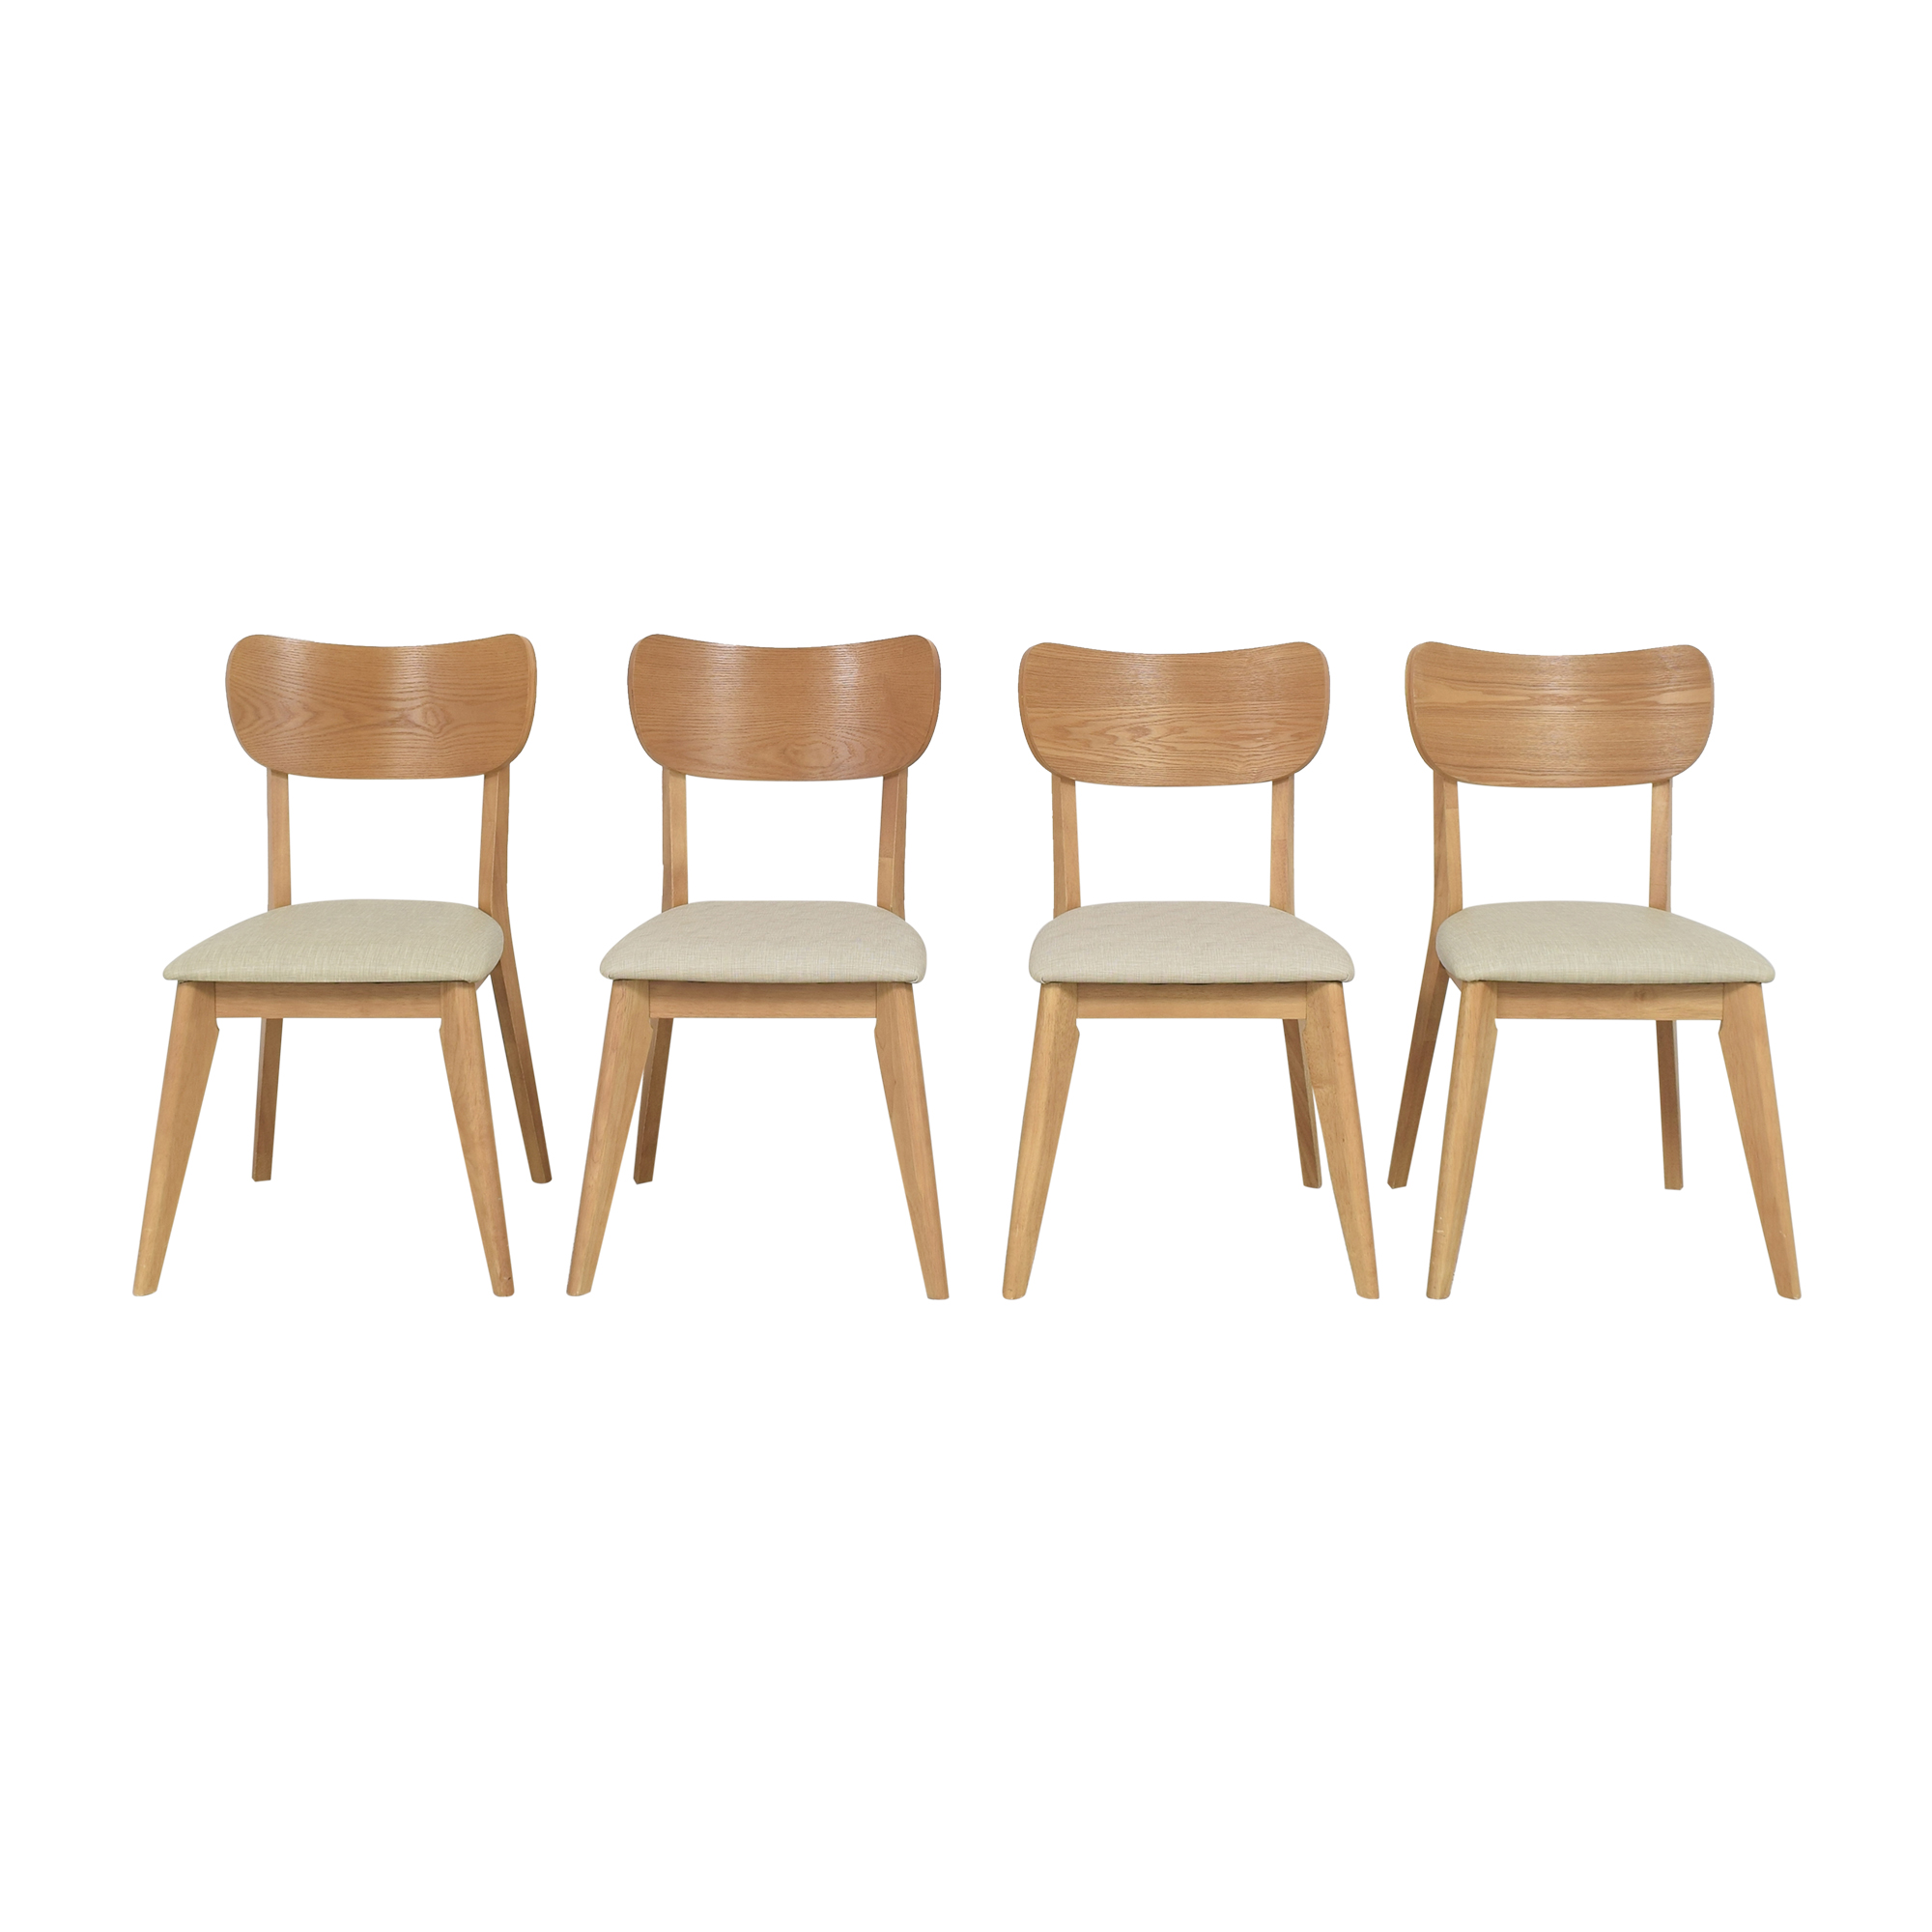 Mid-Century Modern Style Dining Chairs for sale